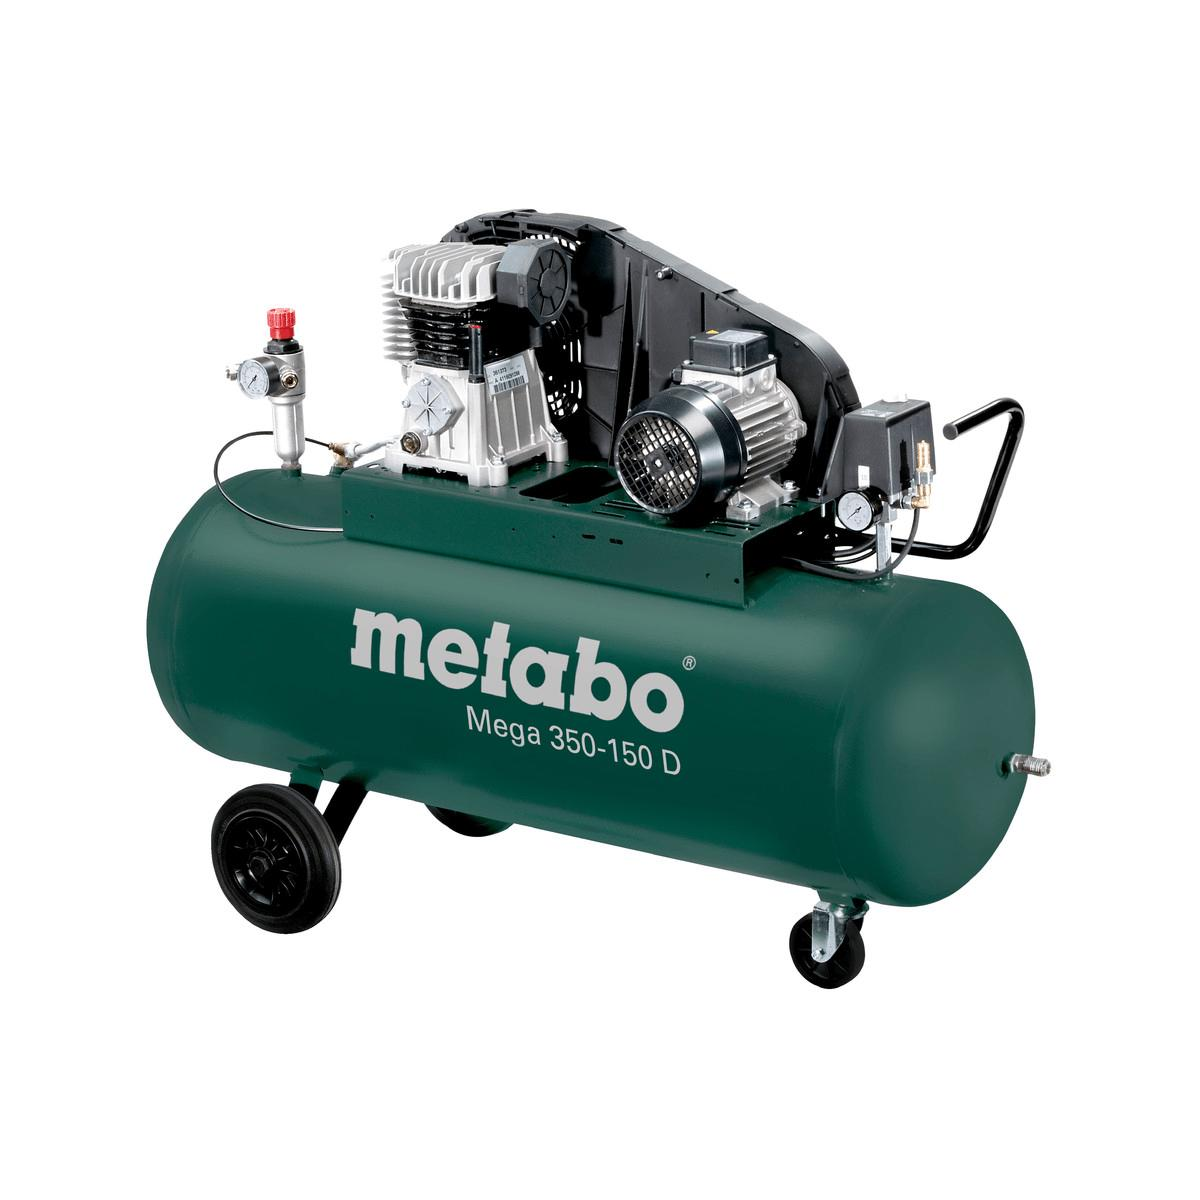 metabo kompressor mega 350 150 d 400v 150 liter 10 bar. Black Bedroom Furniture Sets. Home Design Ideas